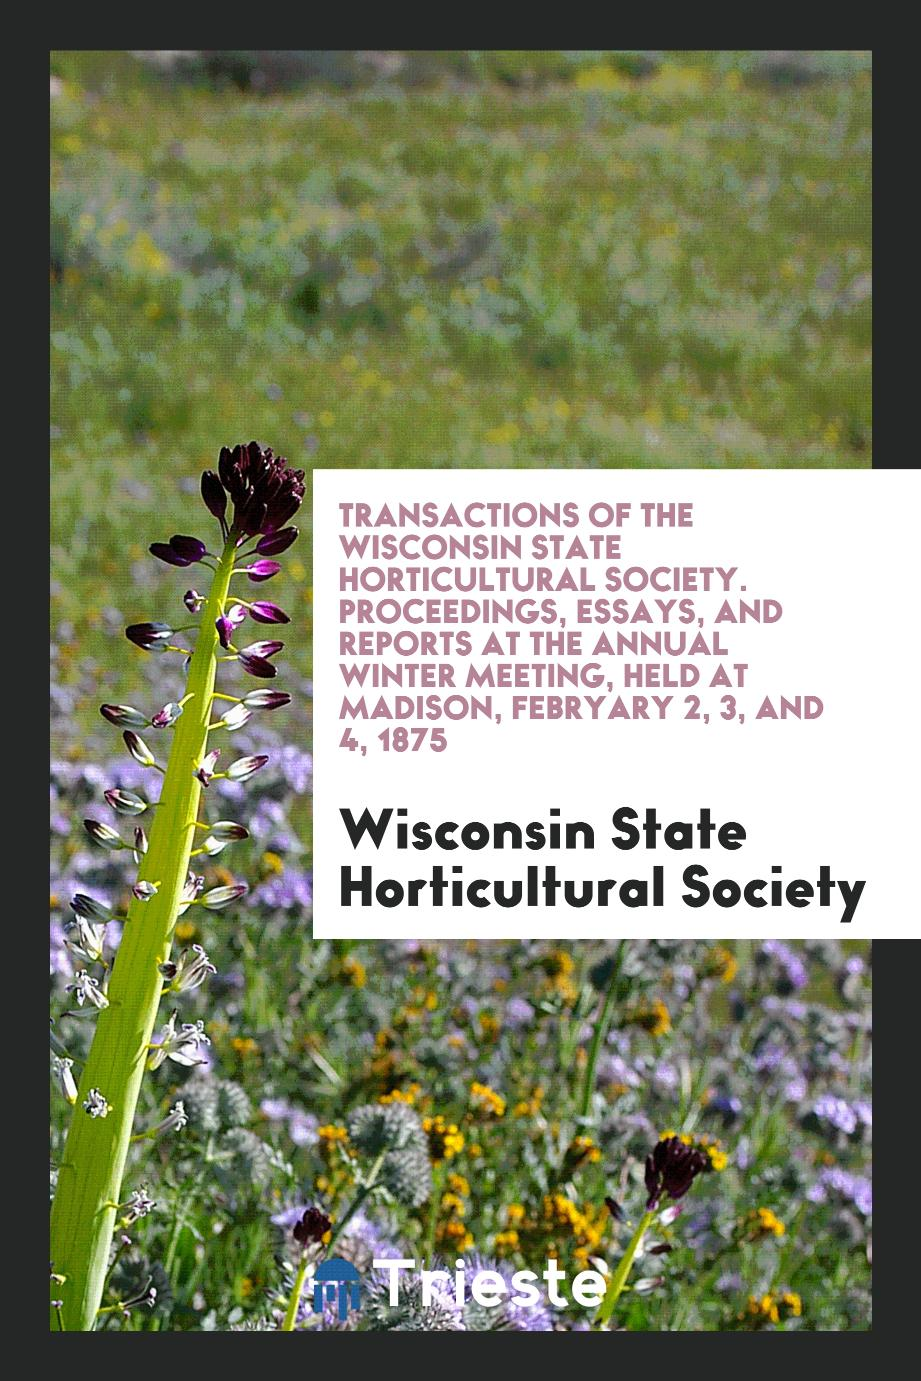 Transactions of the Wisconsin State Horticultural Society. Proceedings, Essays, and Reports at the Annual Winter Meeting, Held at Madison, Febryary 2, 3, and 4, 1875